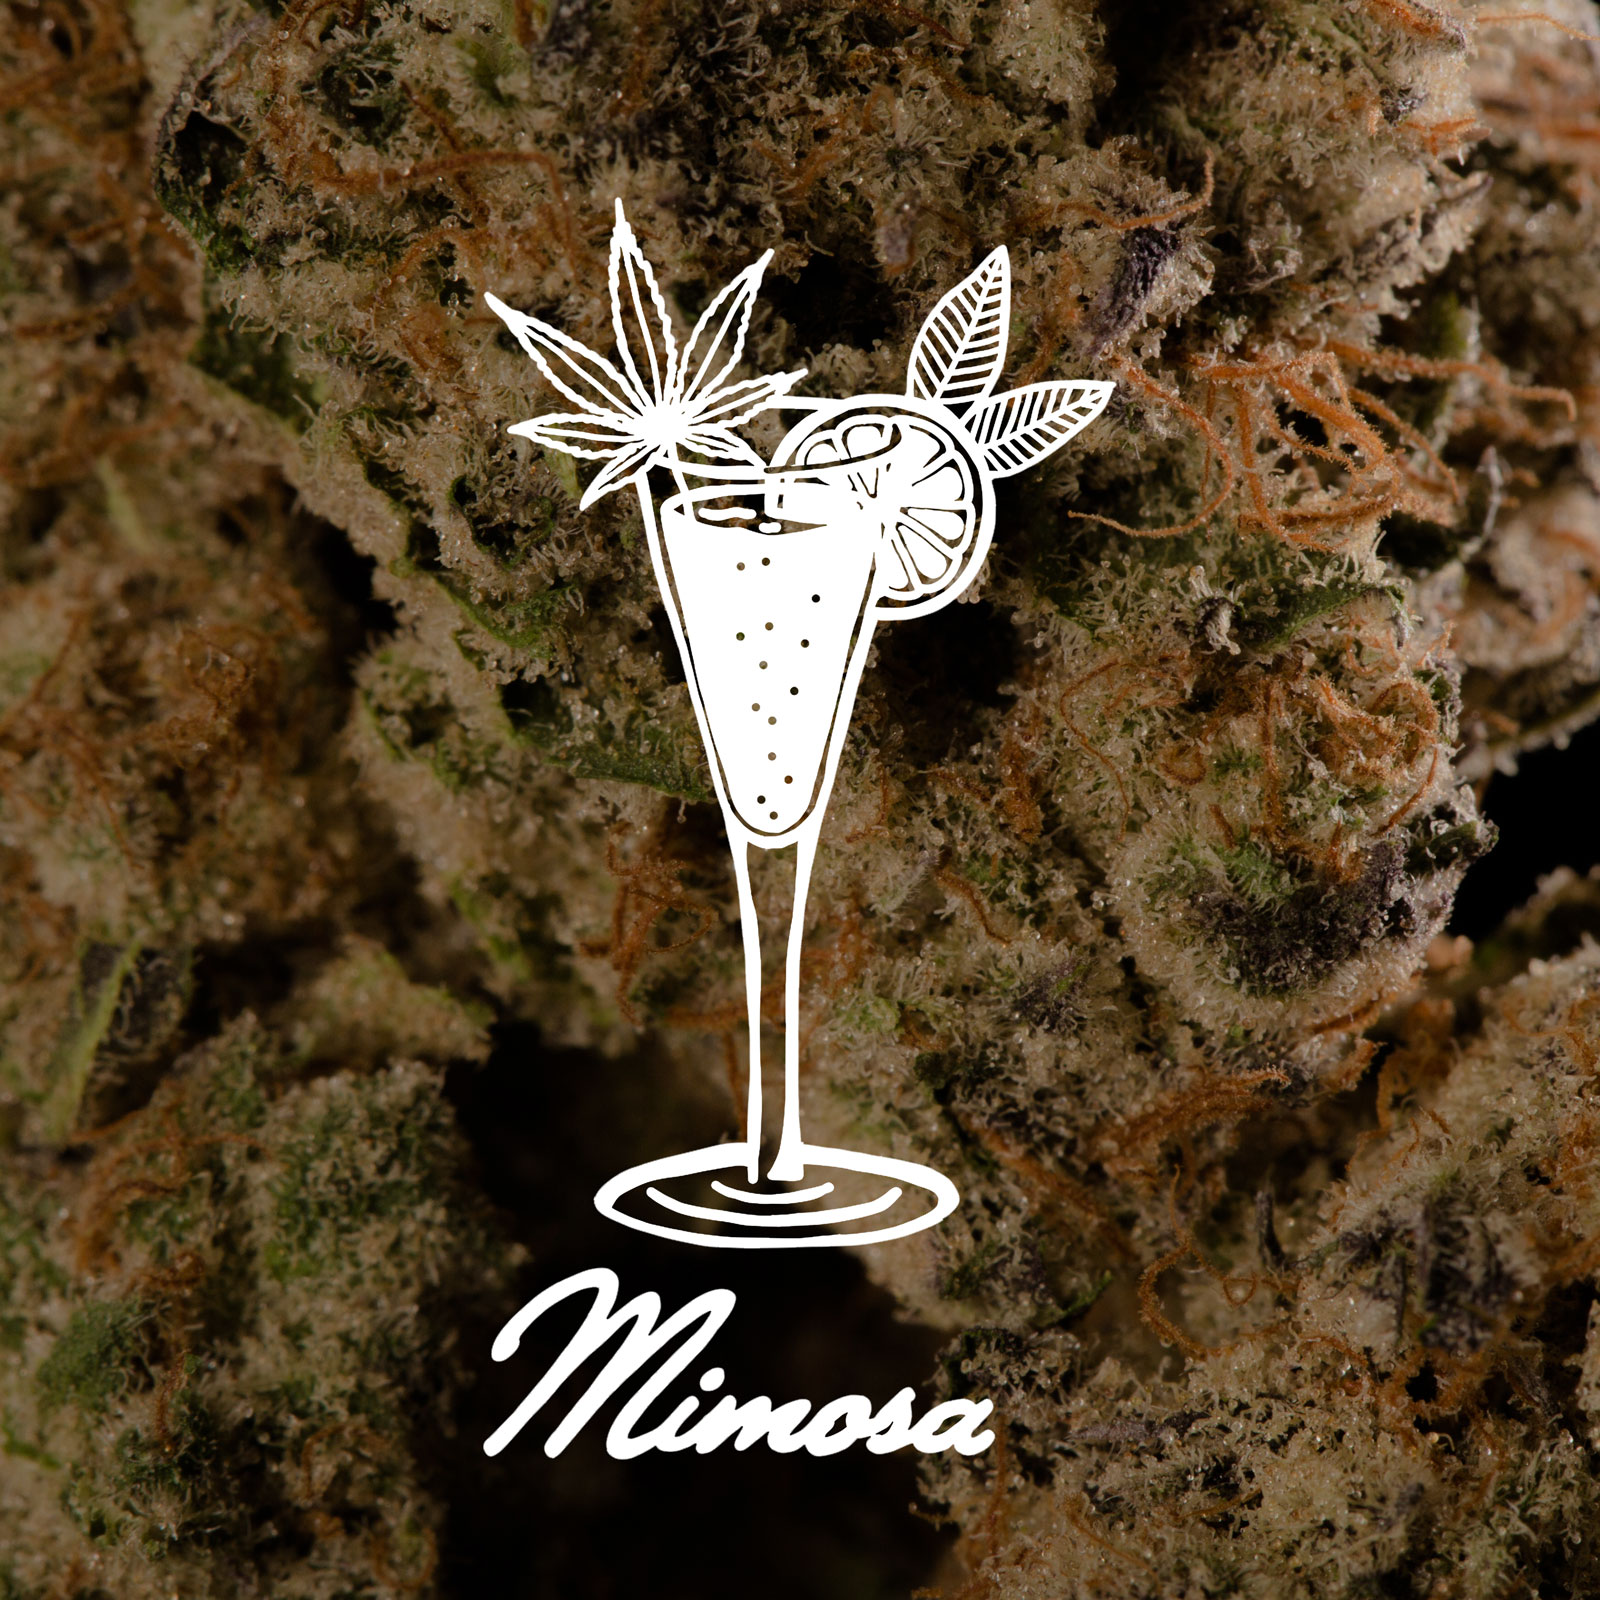 Just like the famous Sunday brunch beverage, Mimosa will leave you feeling refreshed, relaxed, and engaged. This cross is between Clementine and Purple Punch 2.0. with sweet citrus aromas matched with a fruit punch-like taste, leaving you with an excellent mid-level buzz. Just like the drink Mimosa, if your enjoyment gets to the best of you, the trajectory of your day may need a little altering.